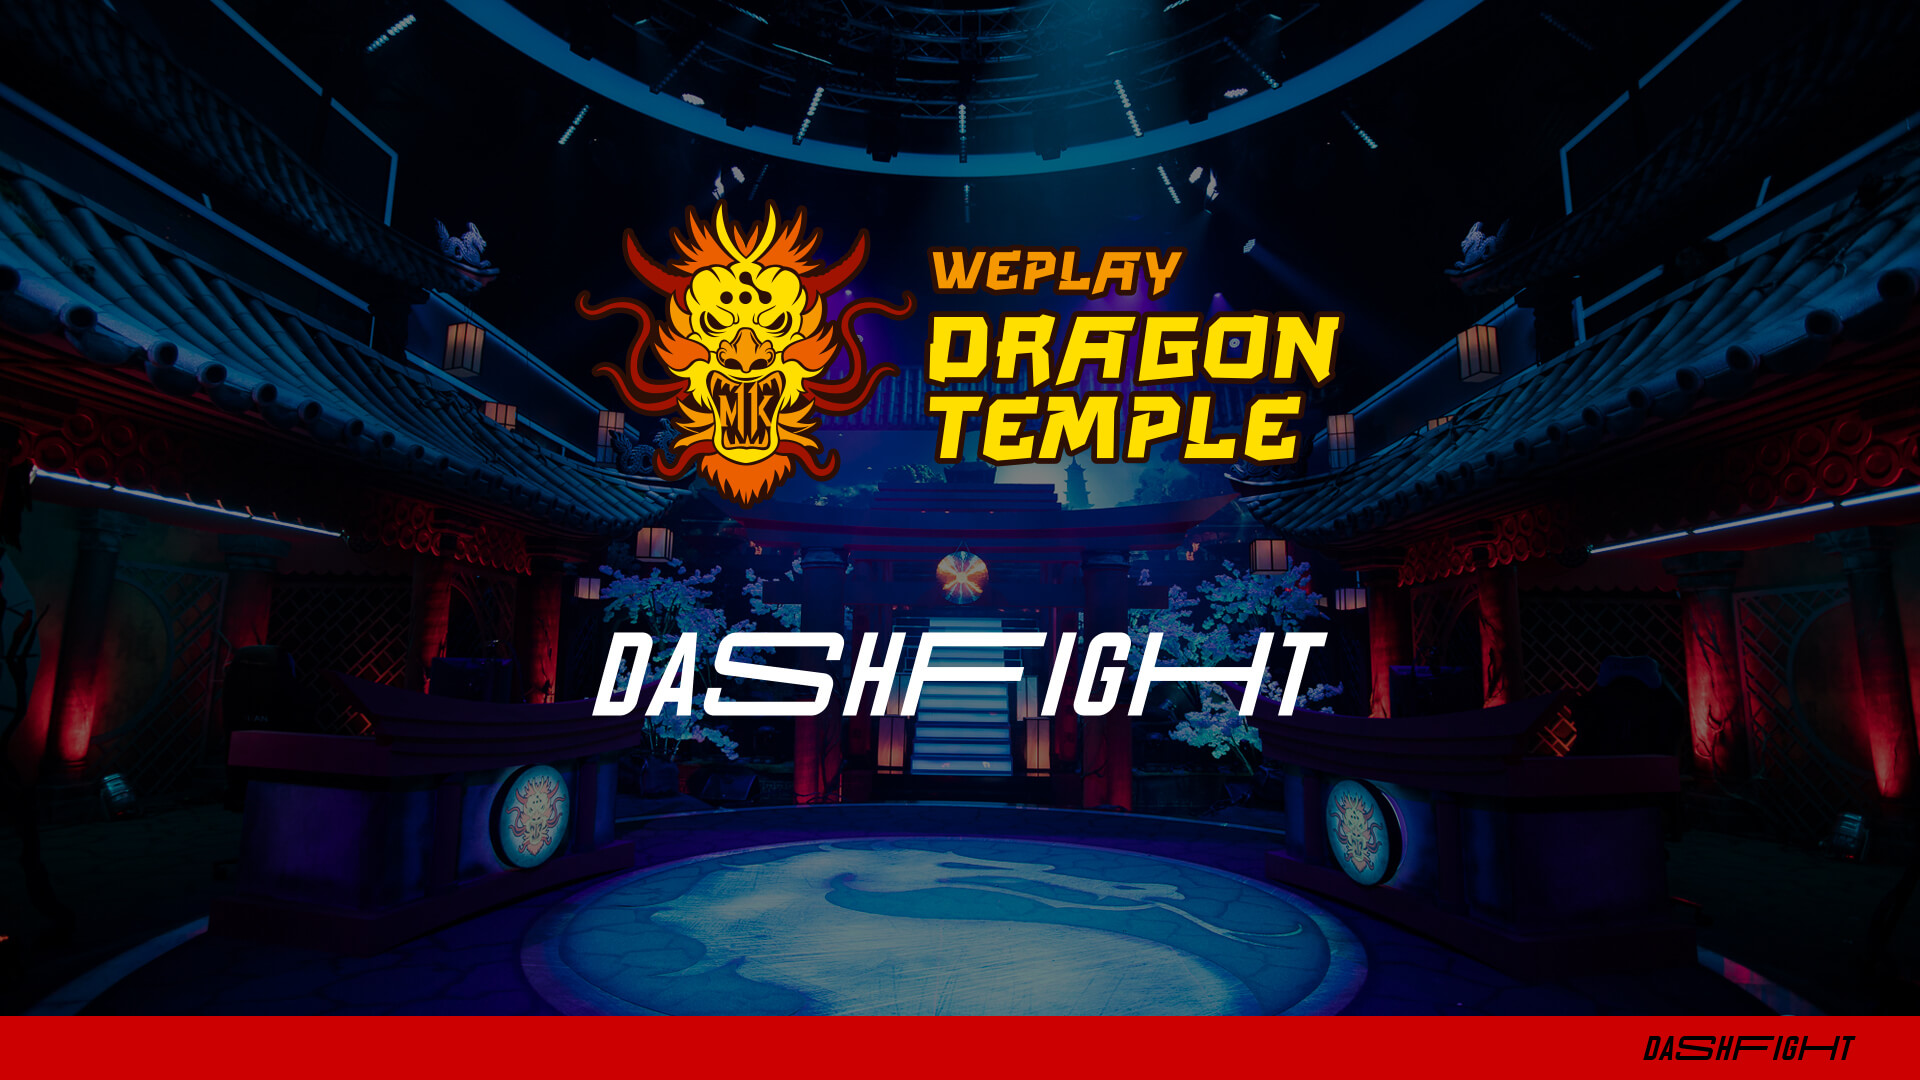 The stage of the WePlay Dragon Temple